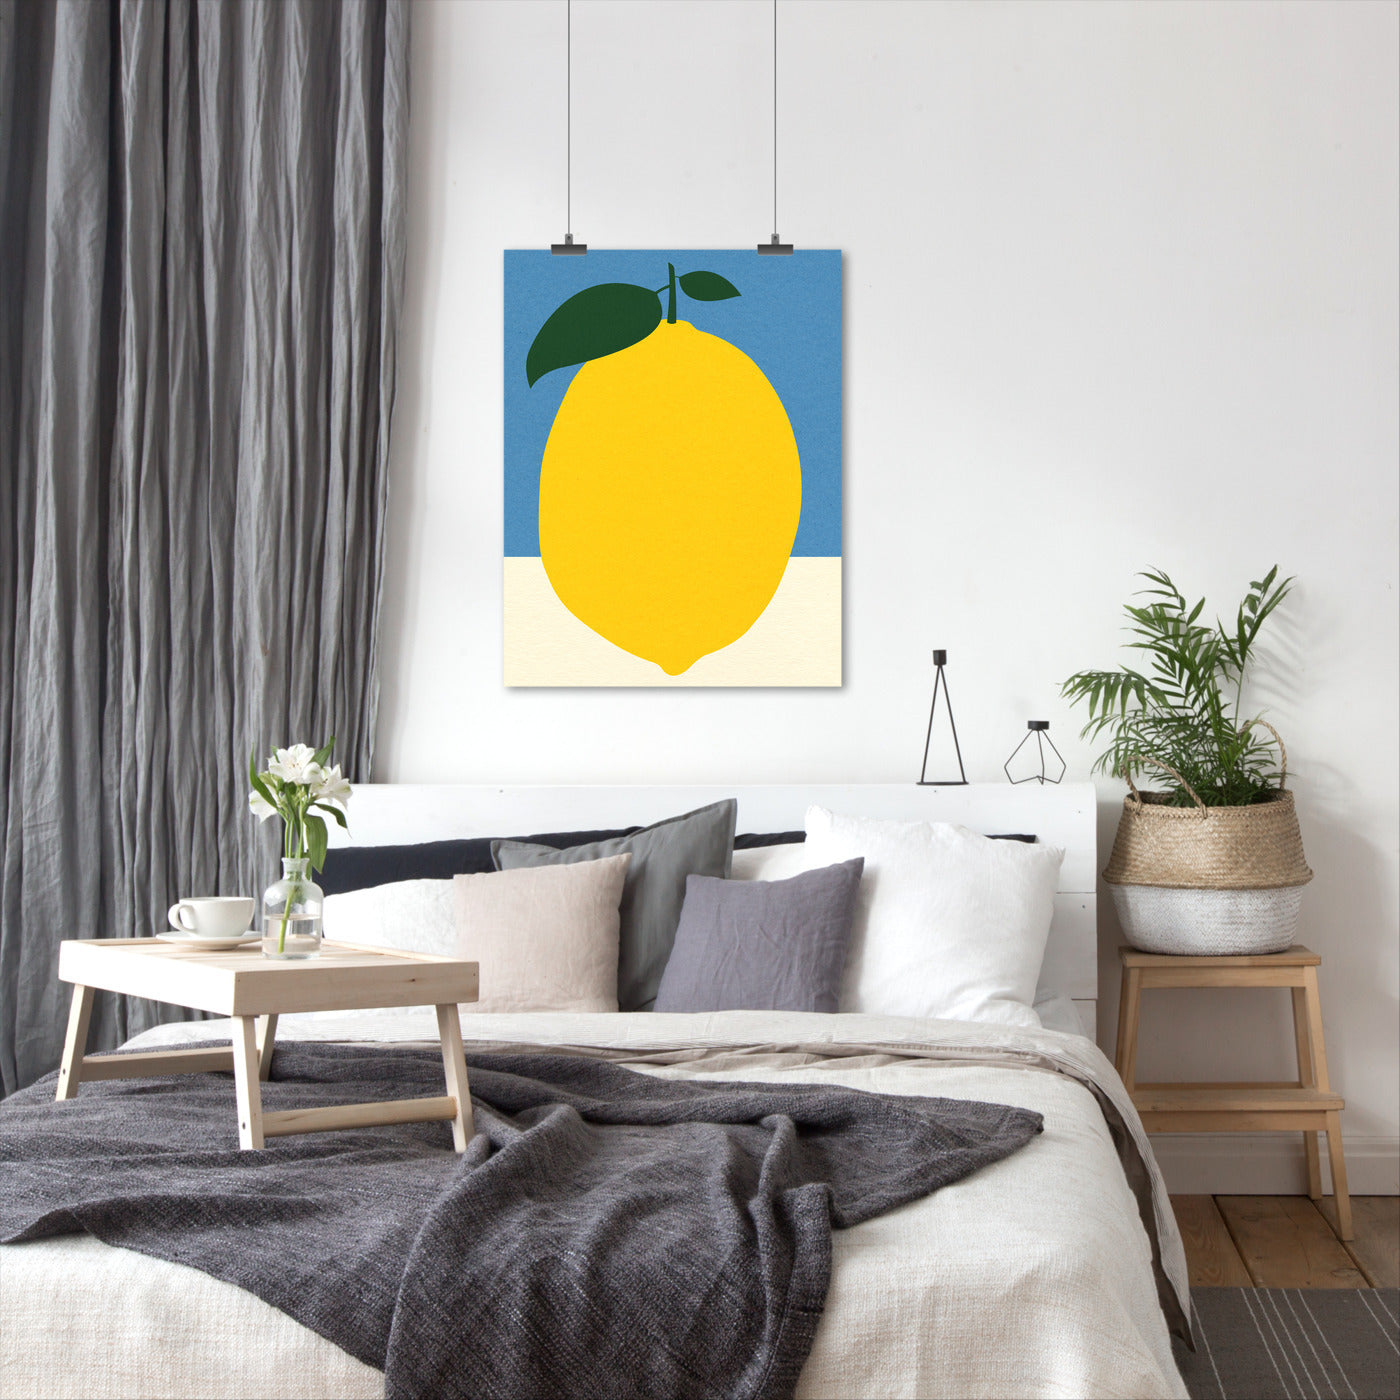 Lemon 2 by Rosi Feist - Art Print - Americanflat